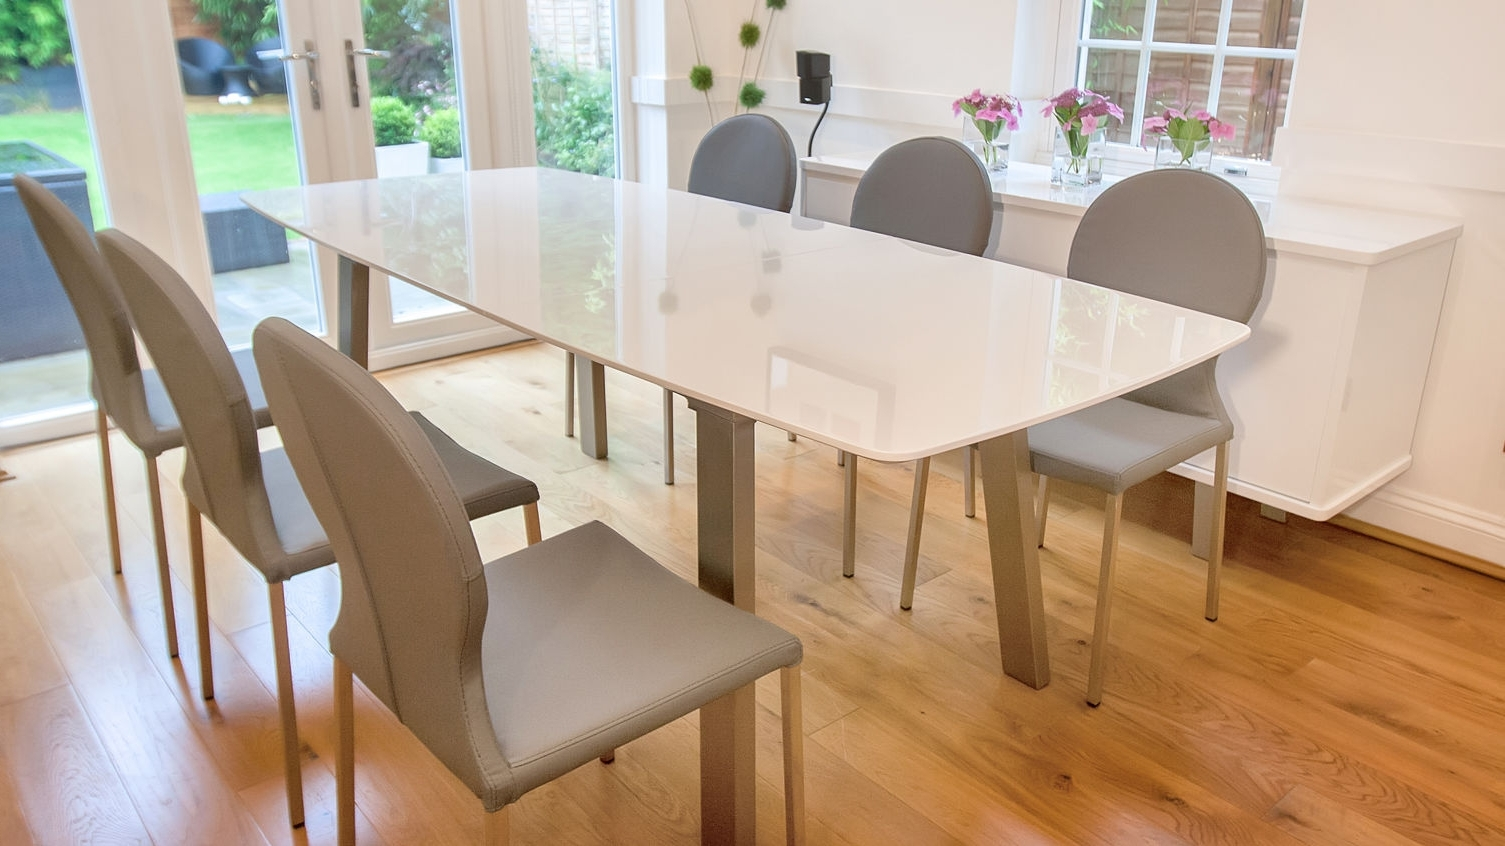 Extending Dining Tables And Chairs For Well Known Extending Dining Room Tables And Chairs Dining Room Chair Slipcovers (Gallery 12 of 25)